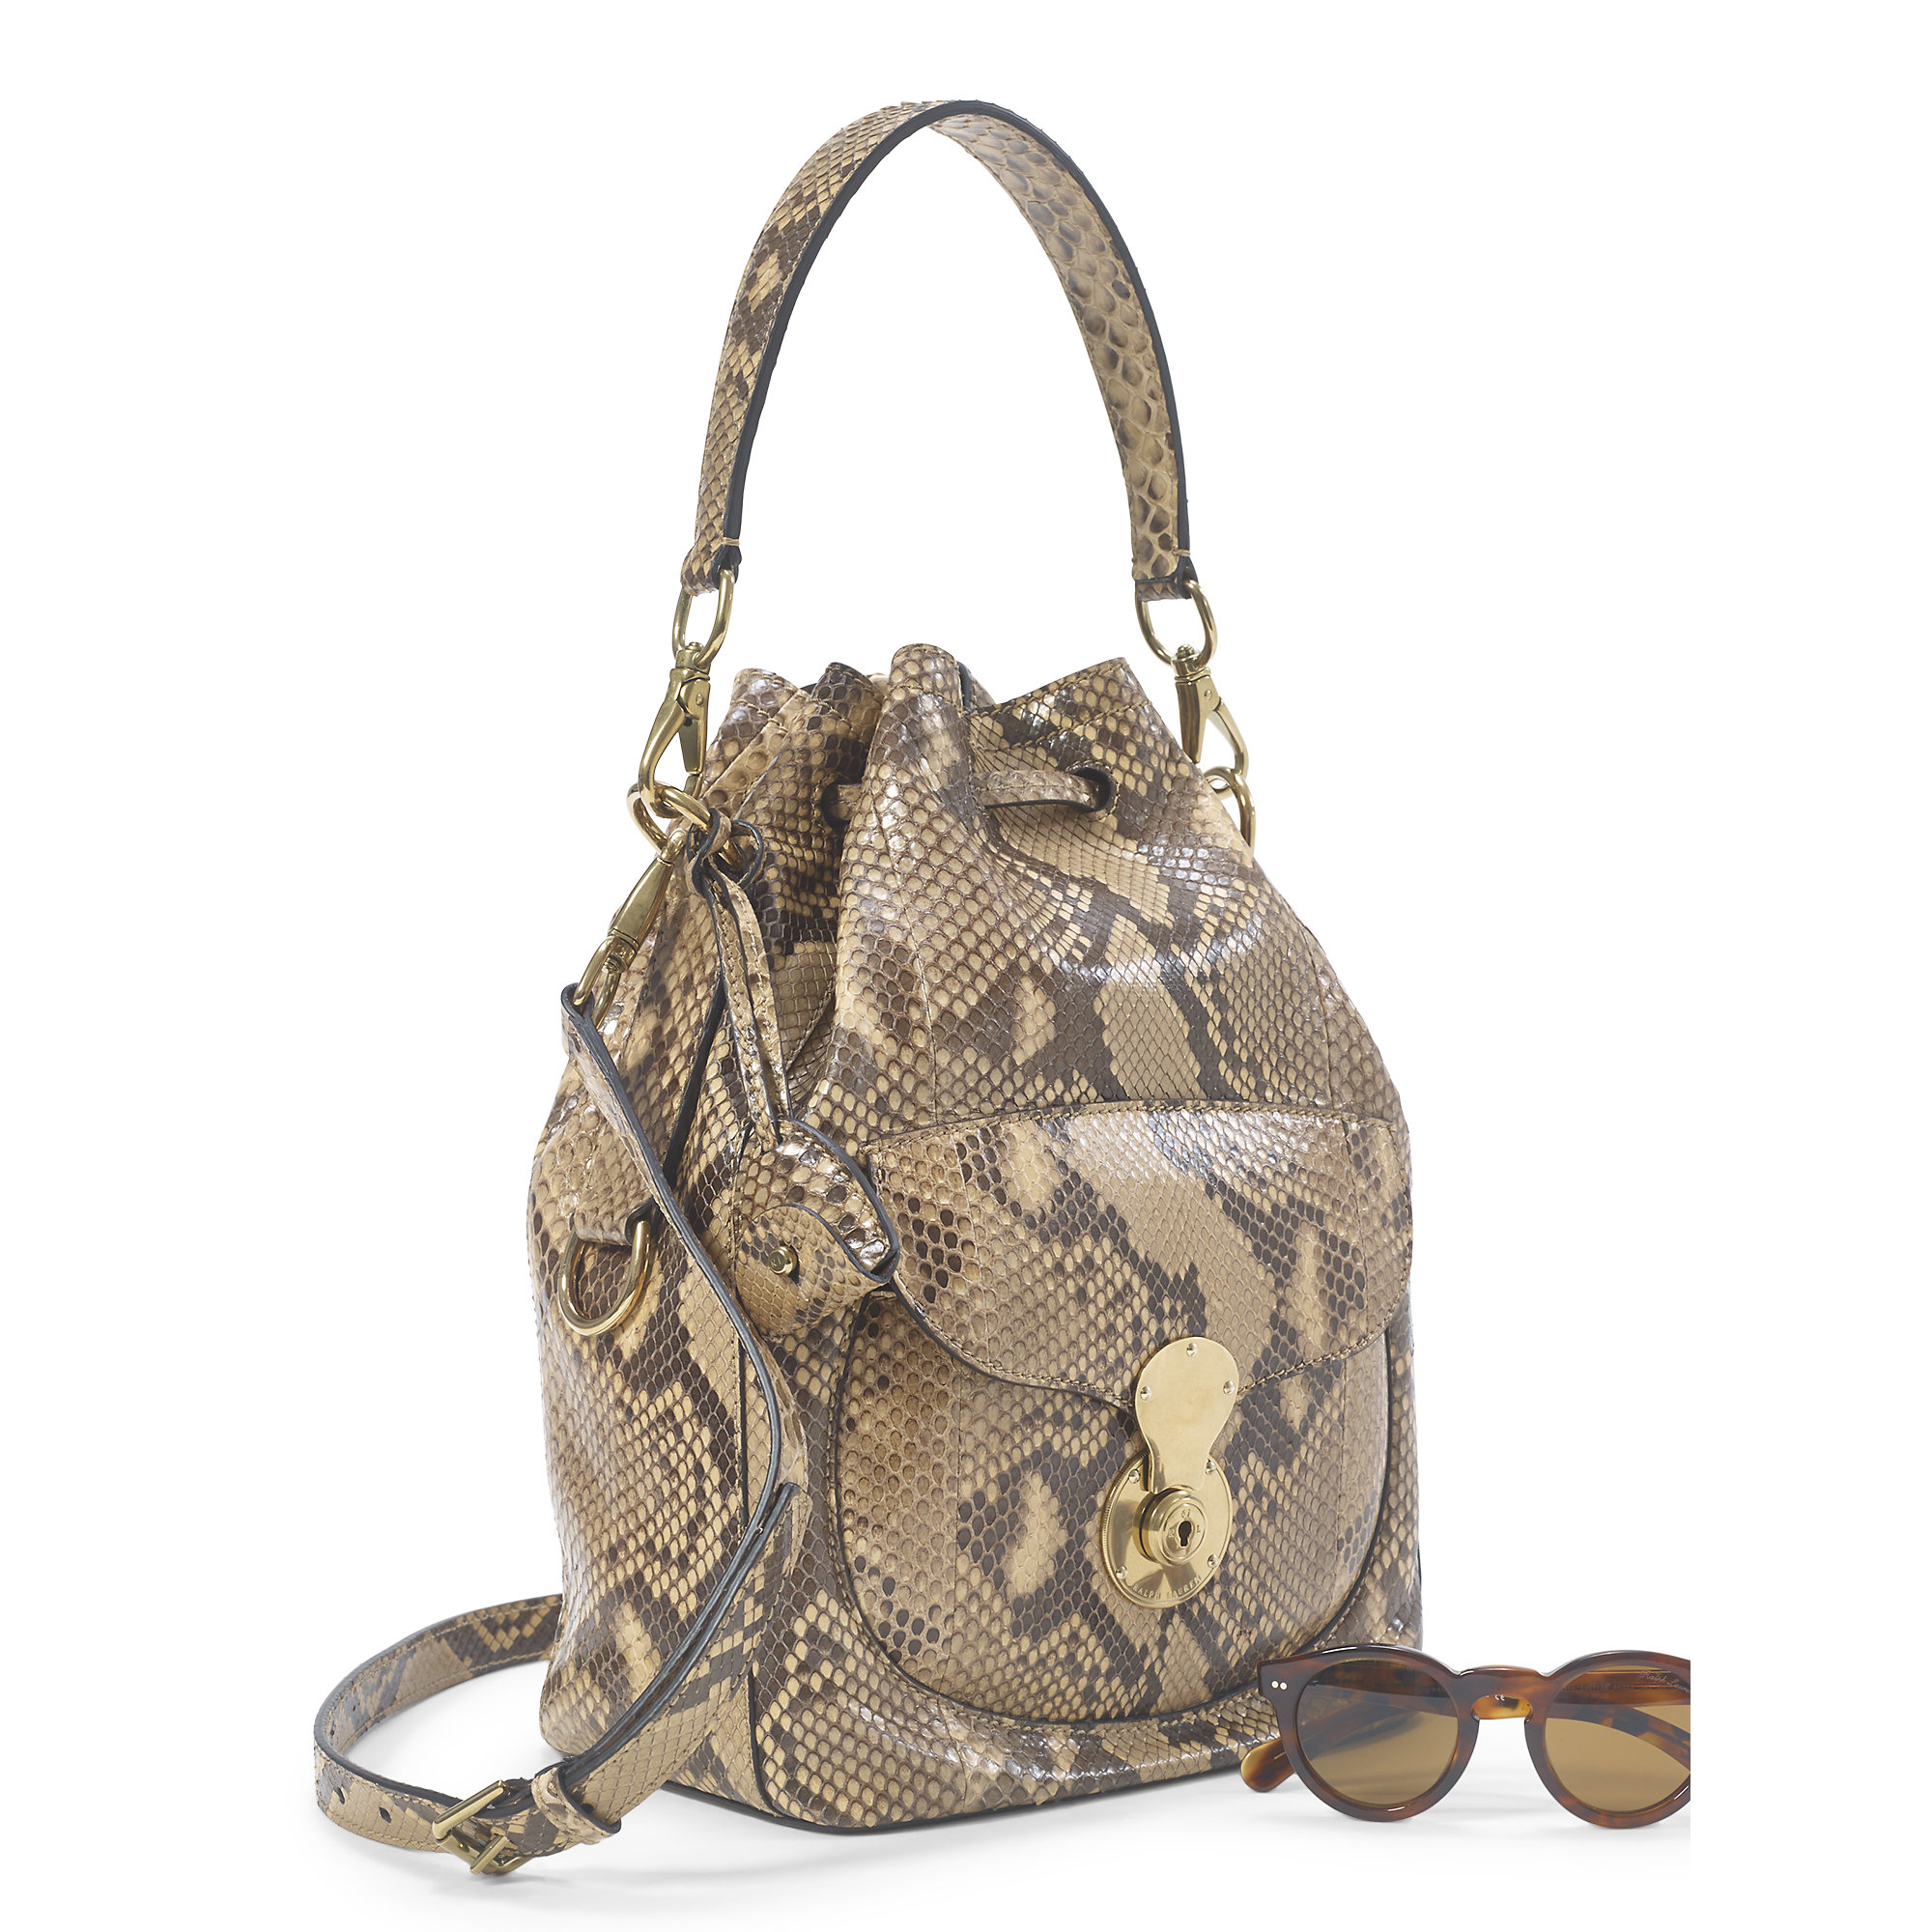 Lyst - Pink Pony Python Ricky Drawstring Bag in Brown acac2d7b92536